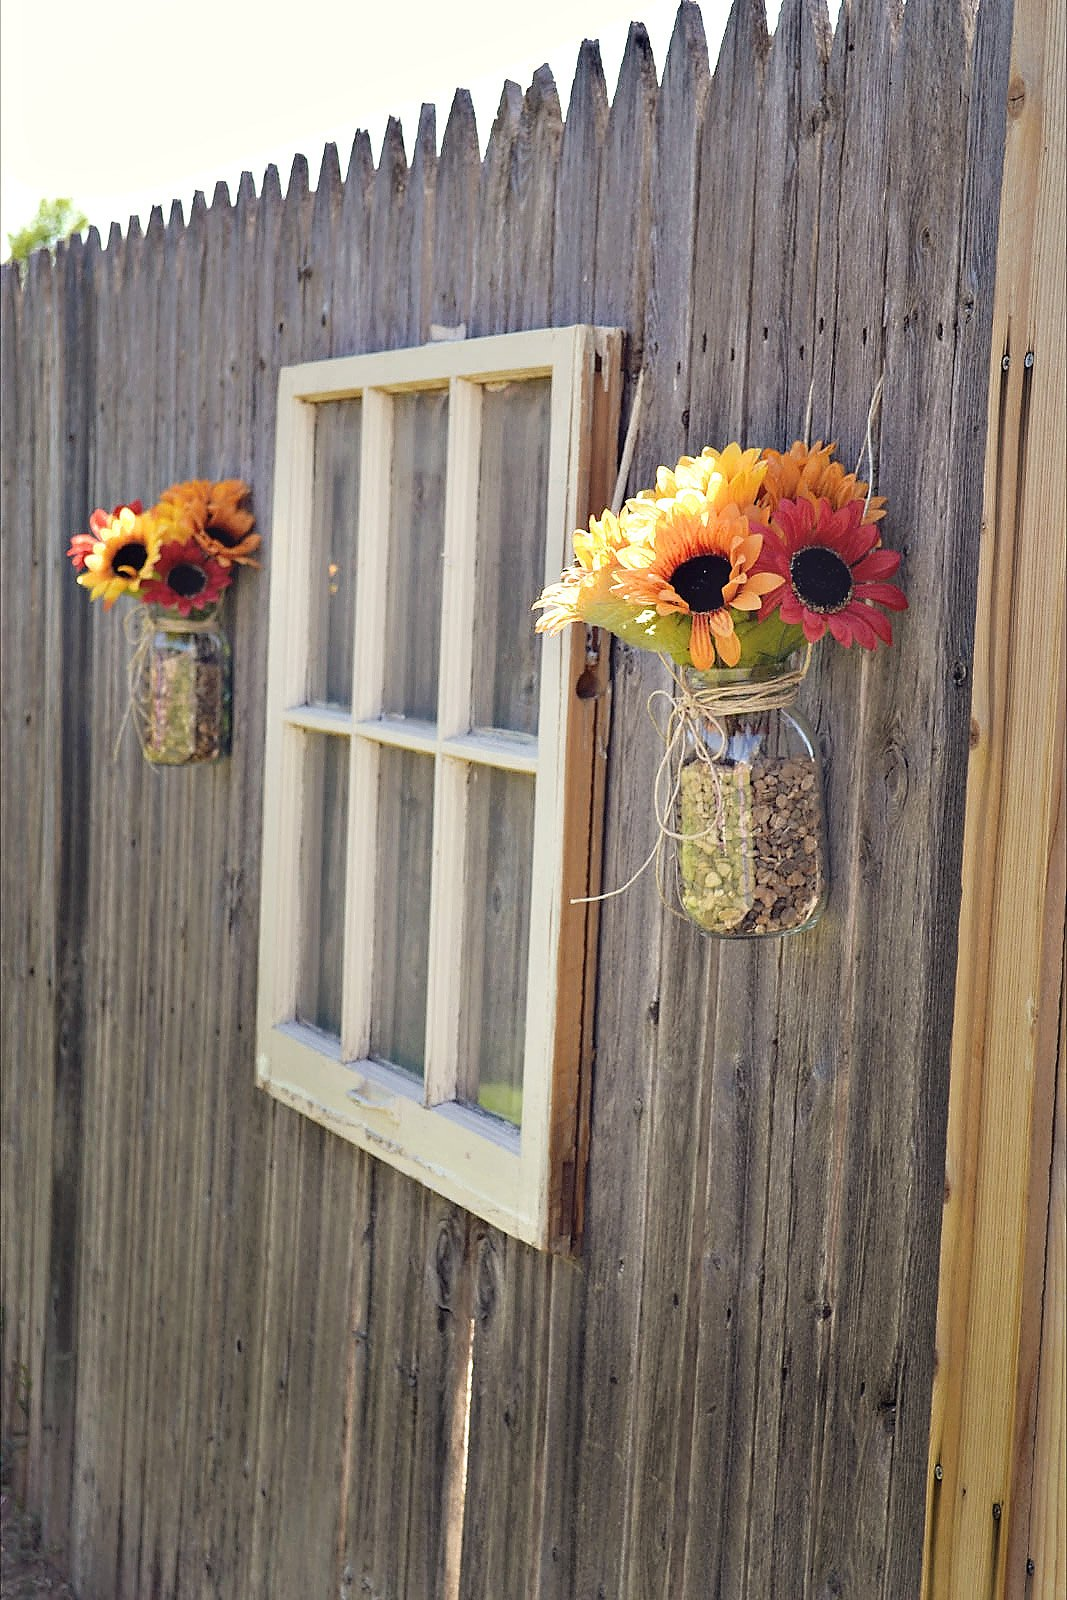 30+ Cool Garden Fence Decoration Ideas - Page 2 of 5 on Backyard Wall Decor Ideas  id=41895